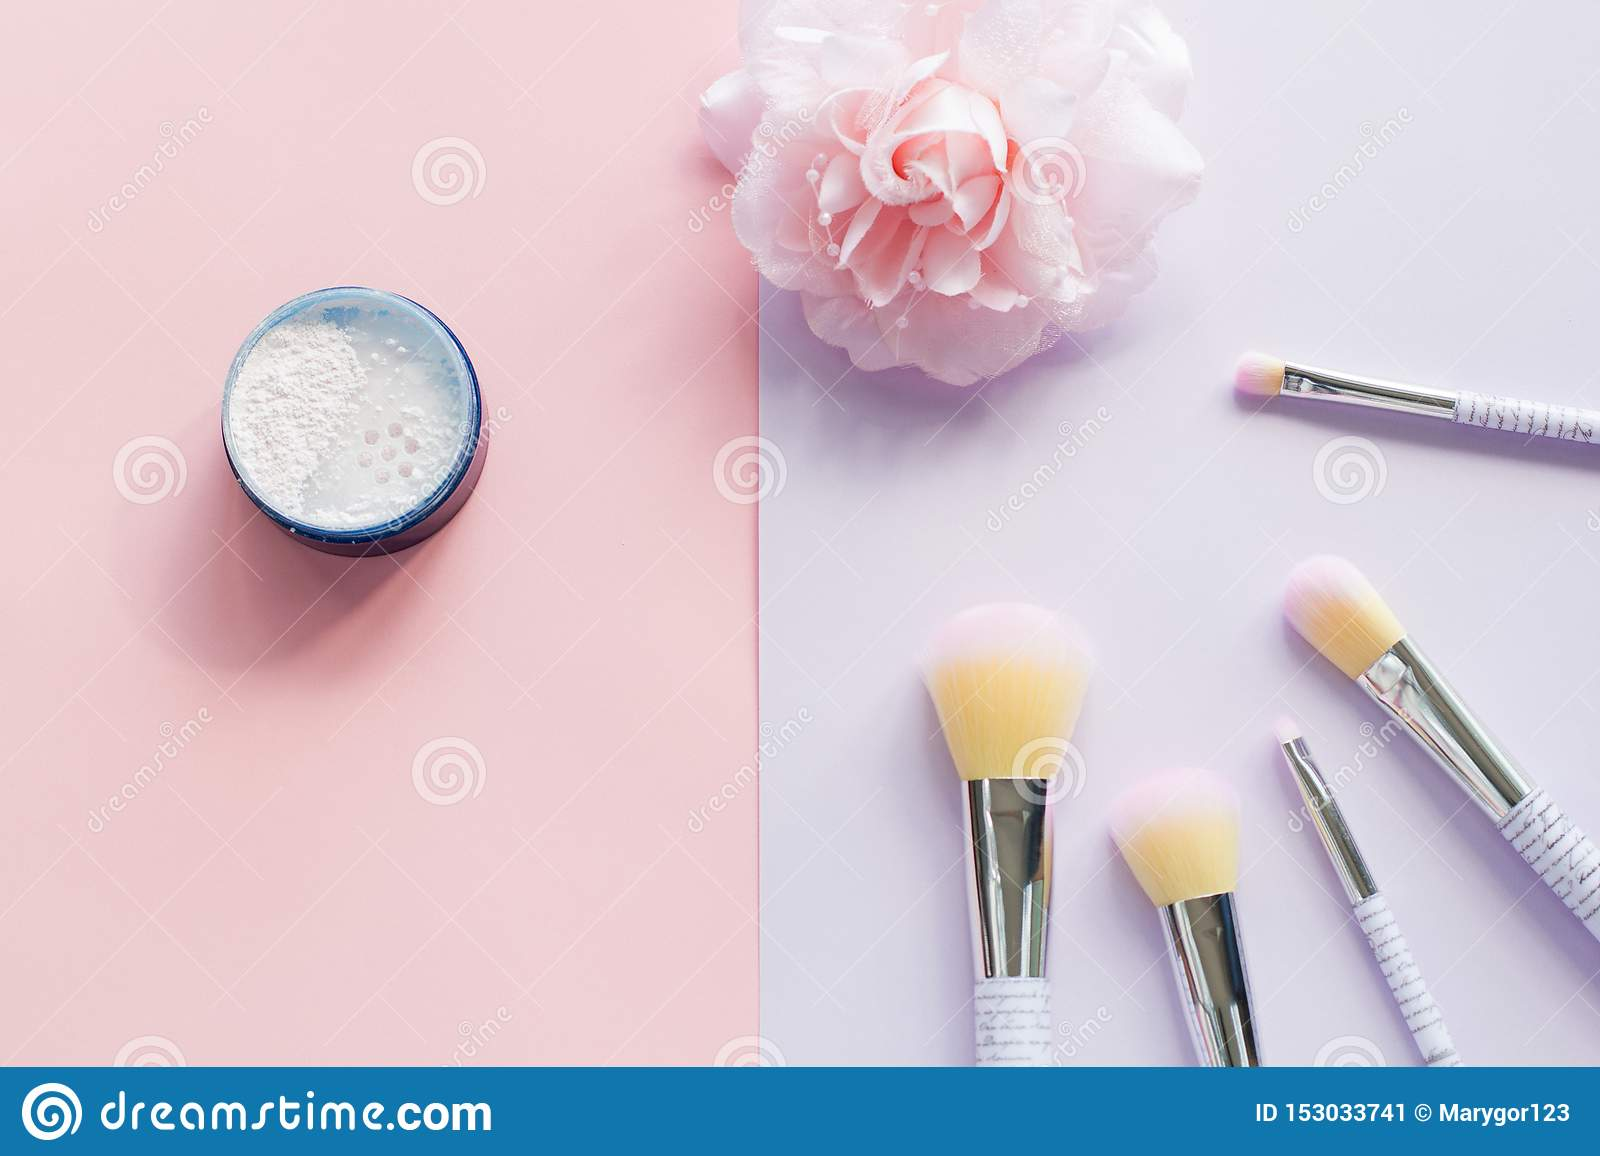 Five makeup brushes with lettering on the handle and mineral powder in a blue jar, bobby pin